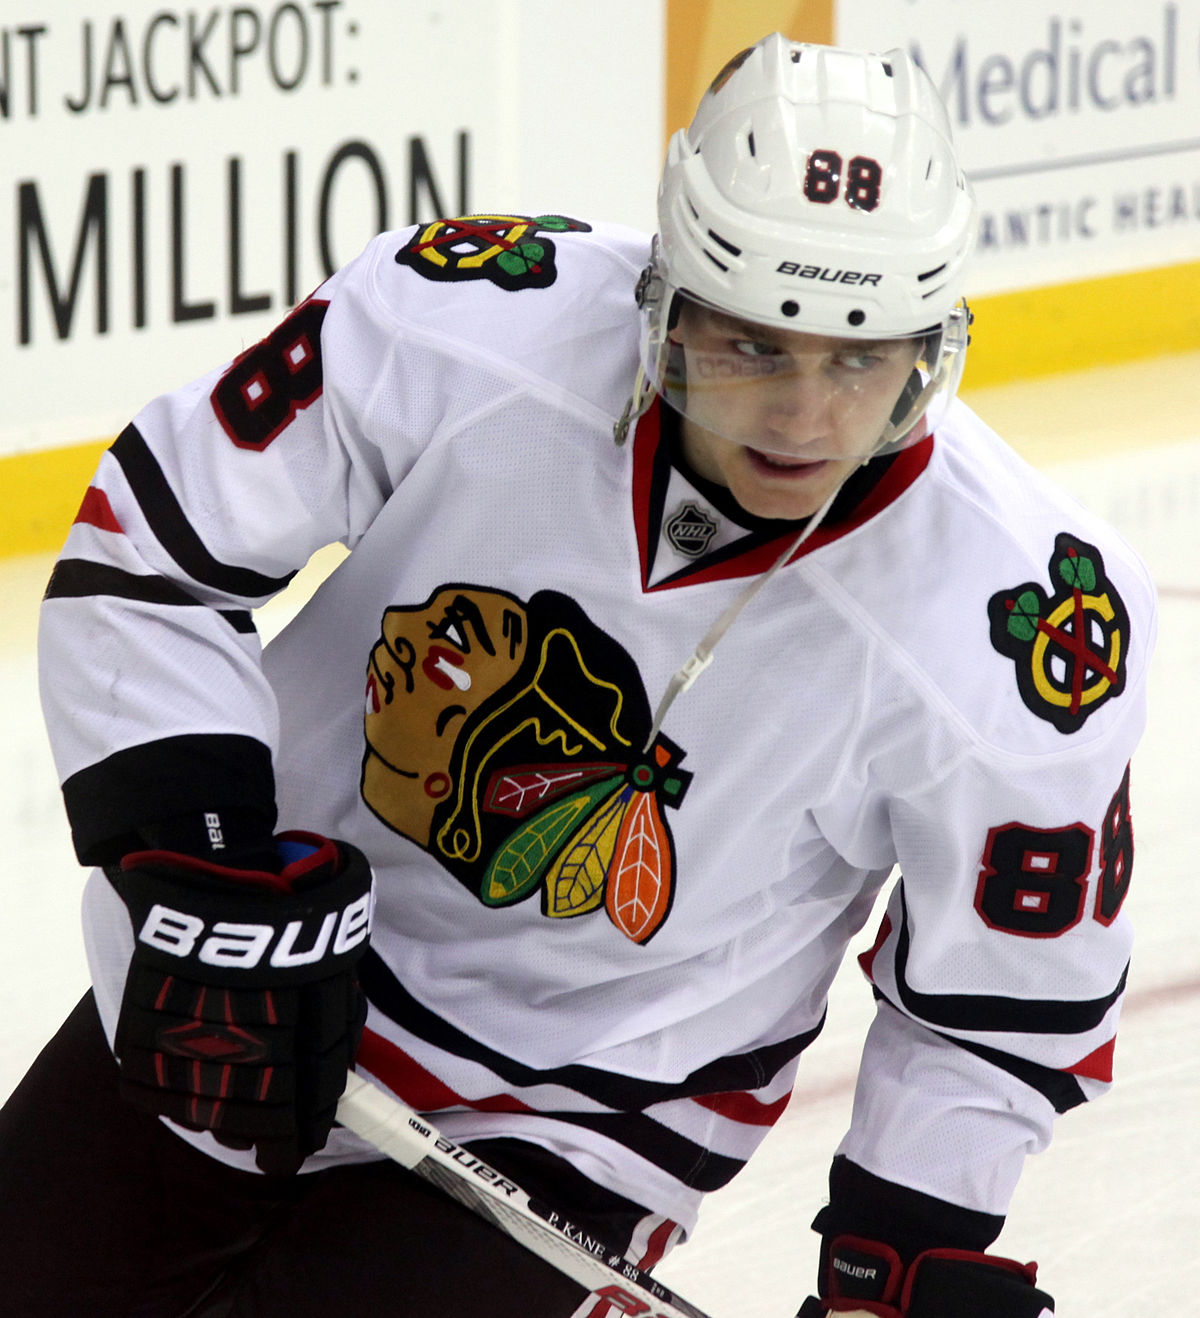 reputable site 7540b 882ea Patrick Kane - Wikipedia